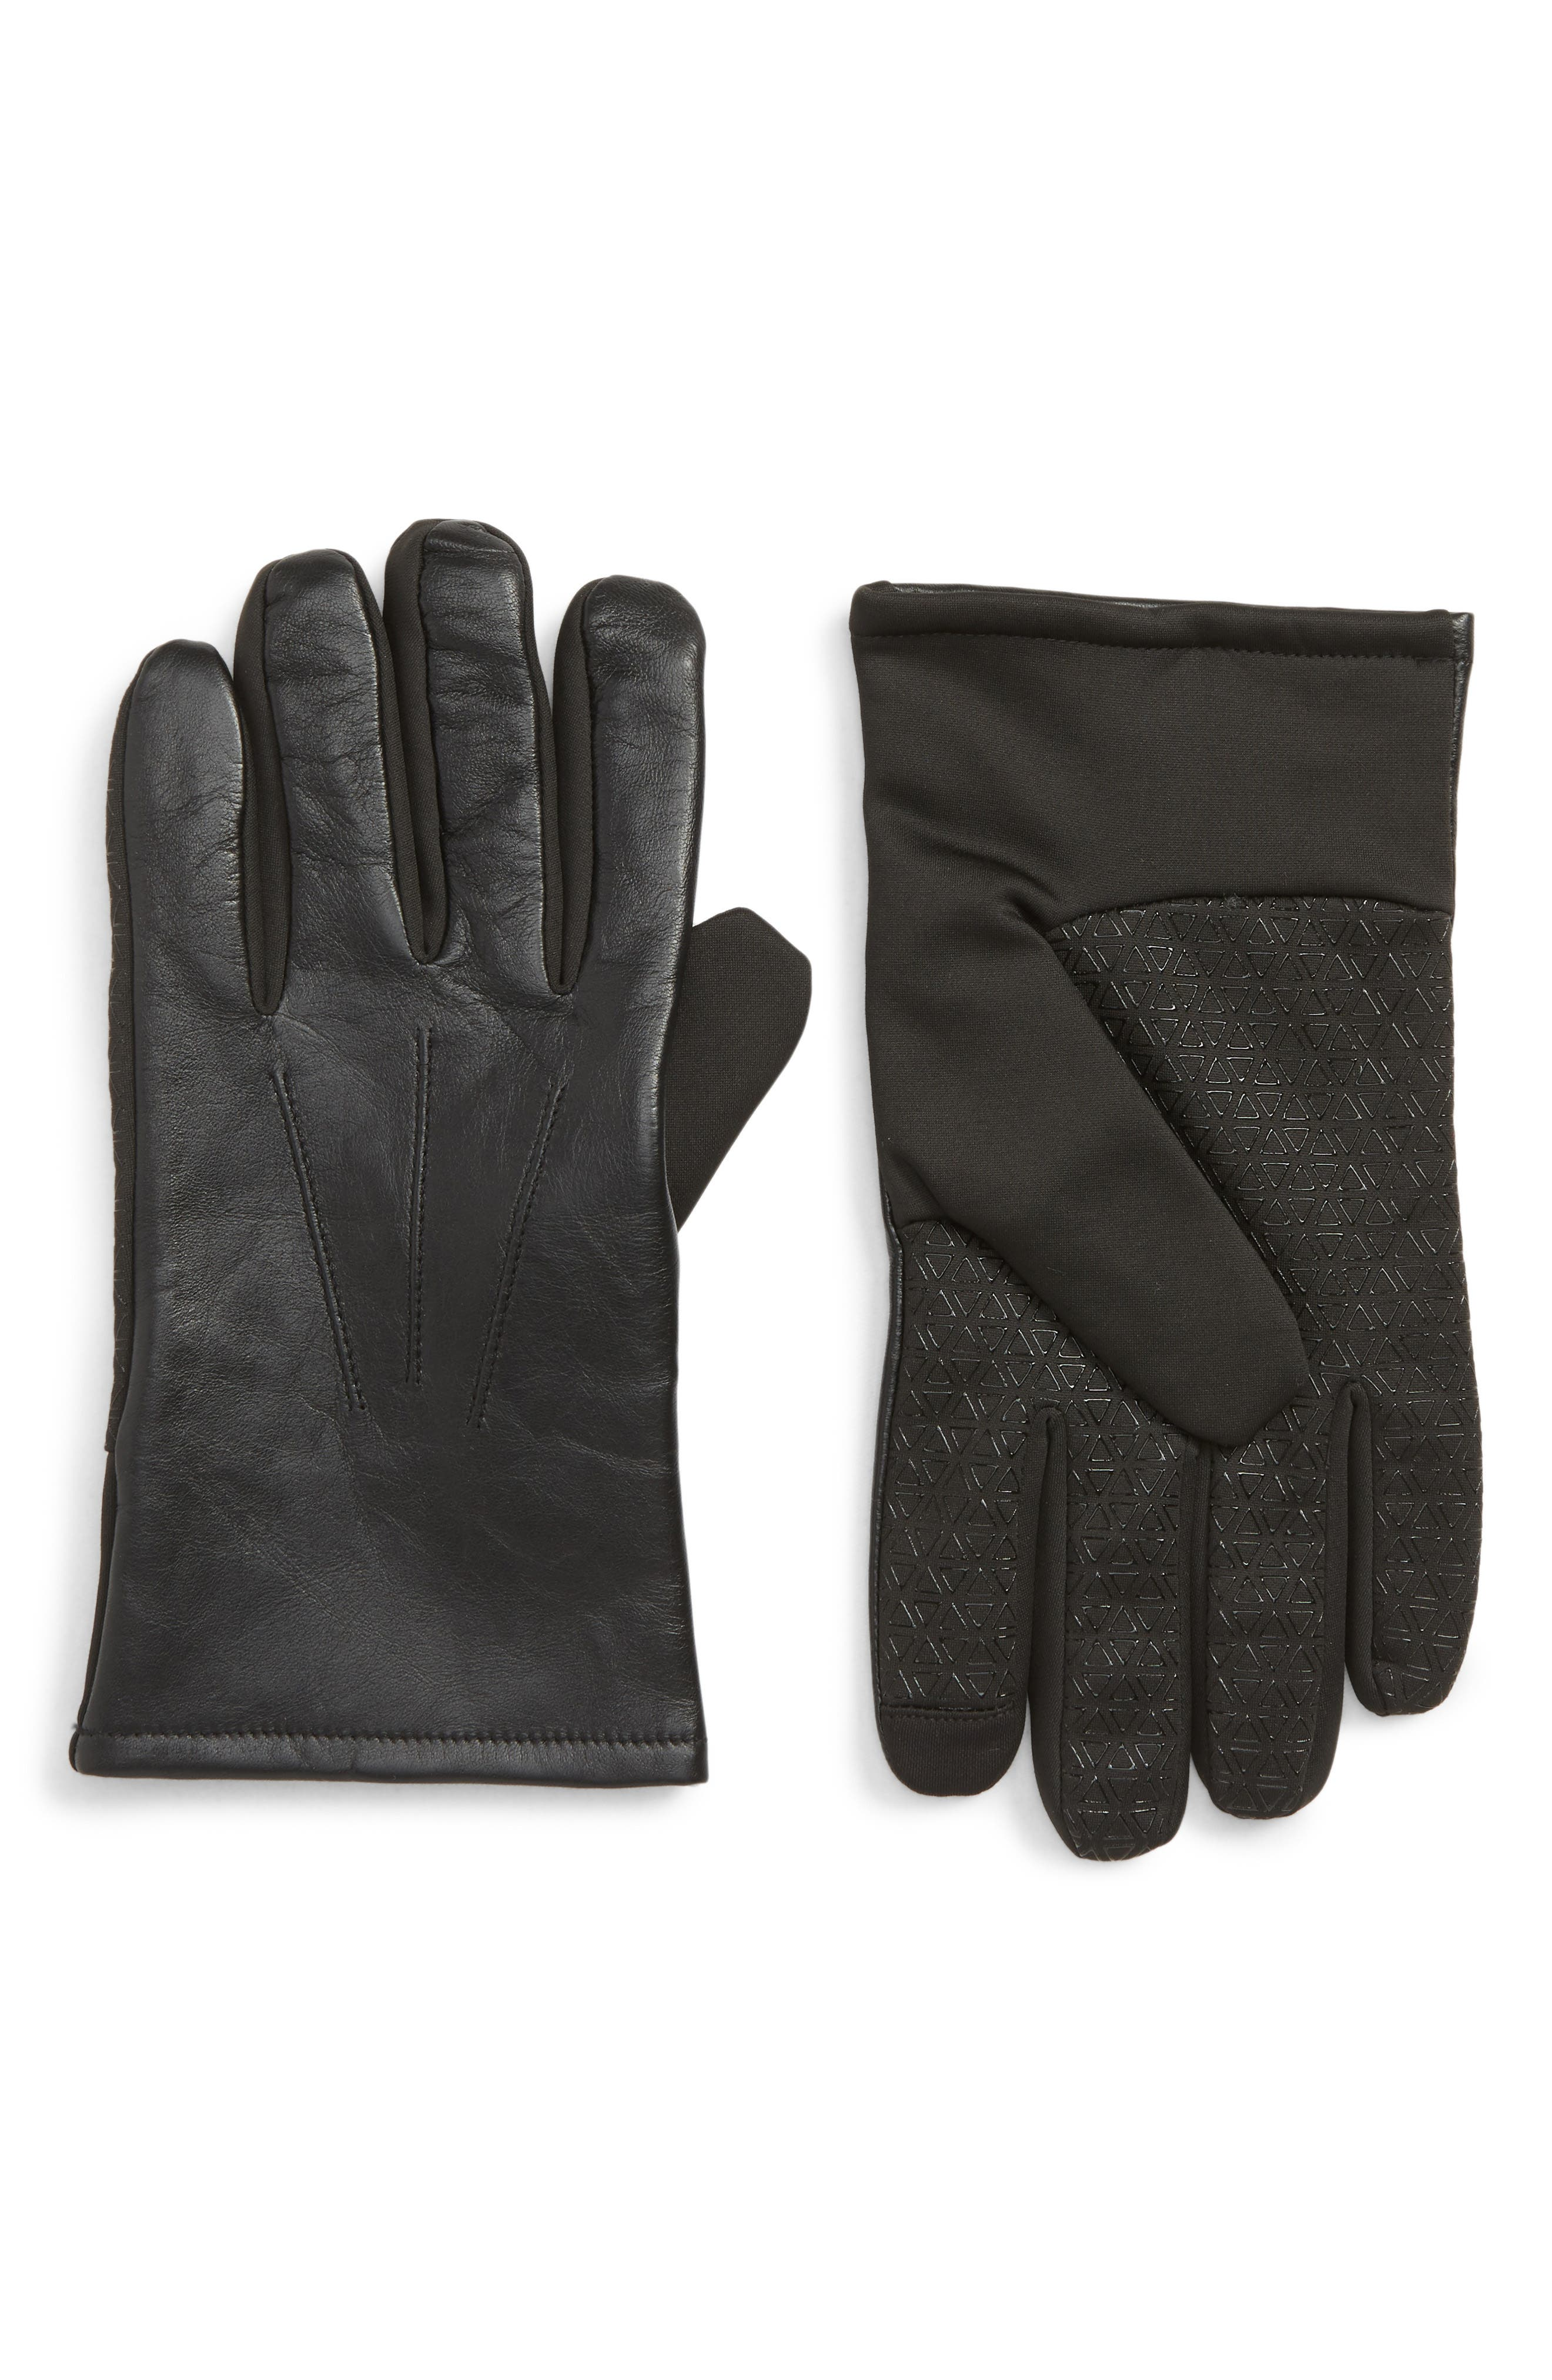 Nordstrom Shop Robson Tech Touch Commuter Gloves, Black